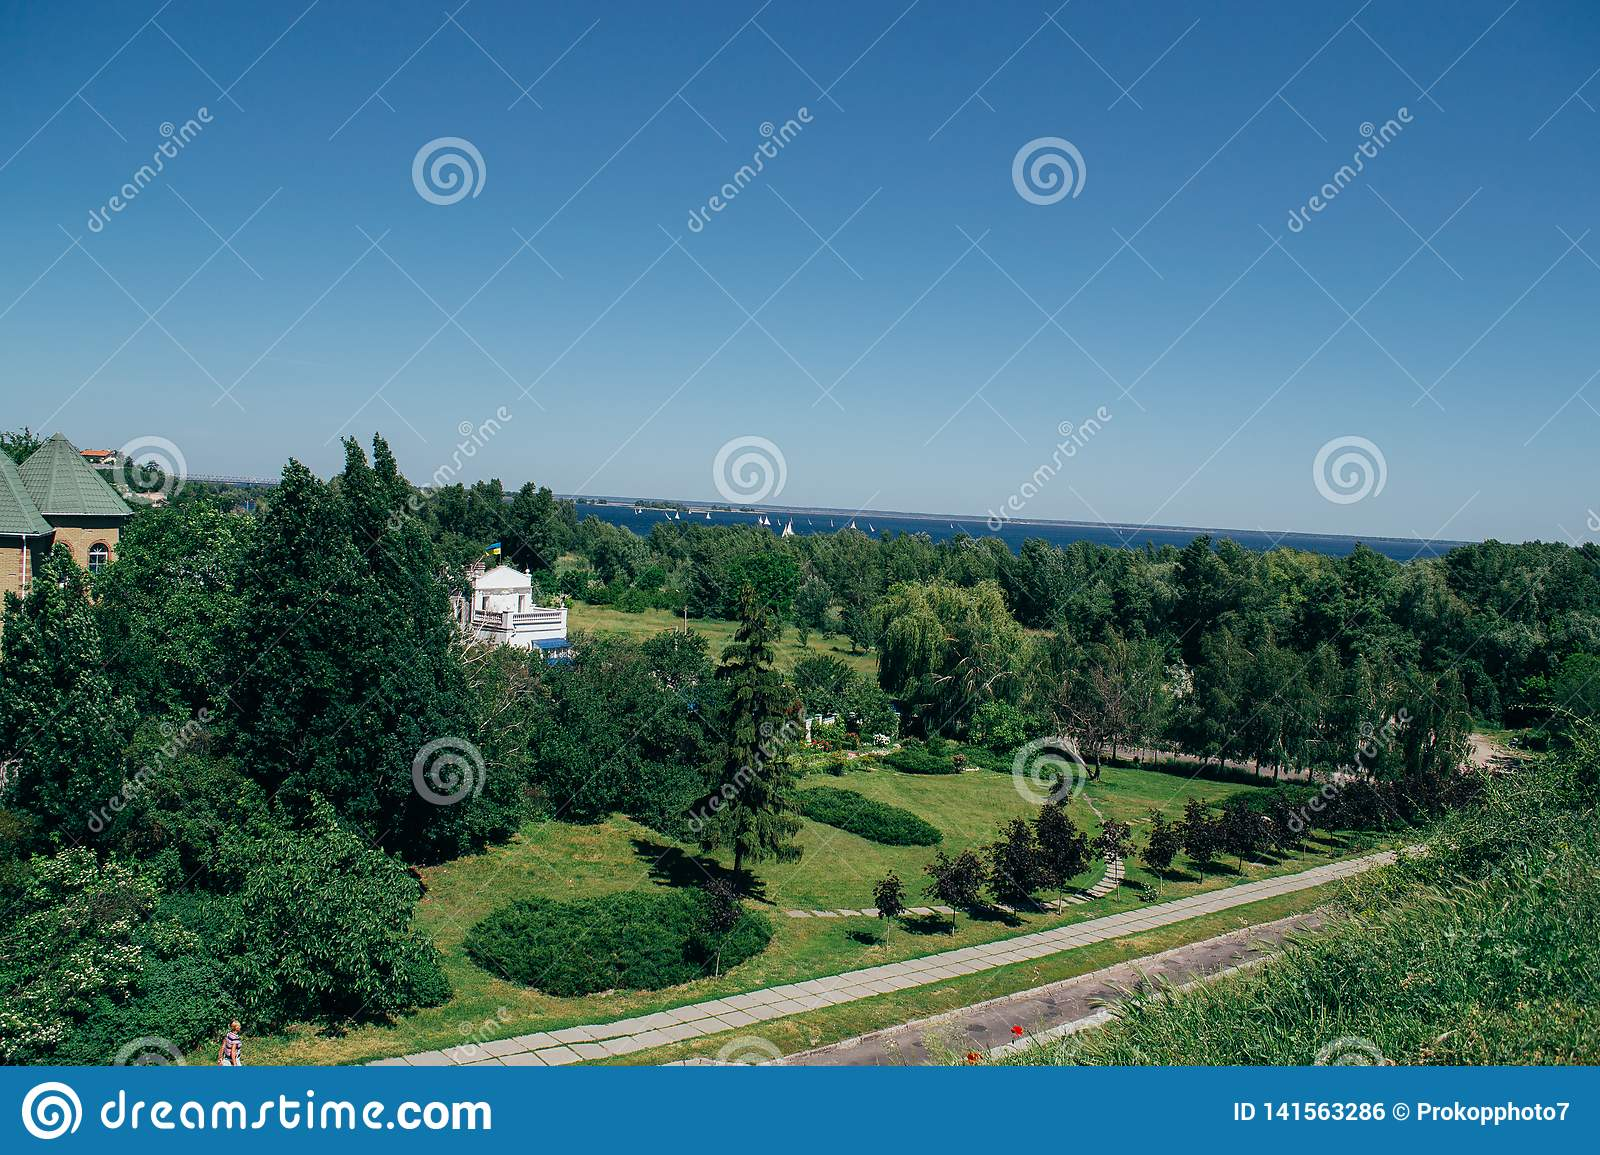 Summer sunny landscape from the air. Park and river view